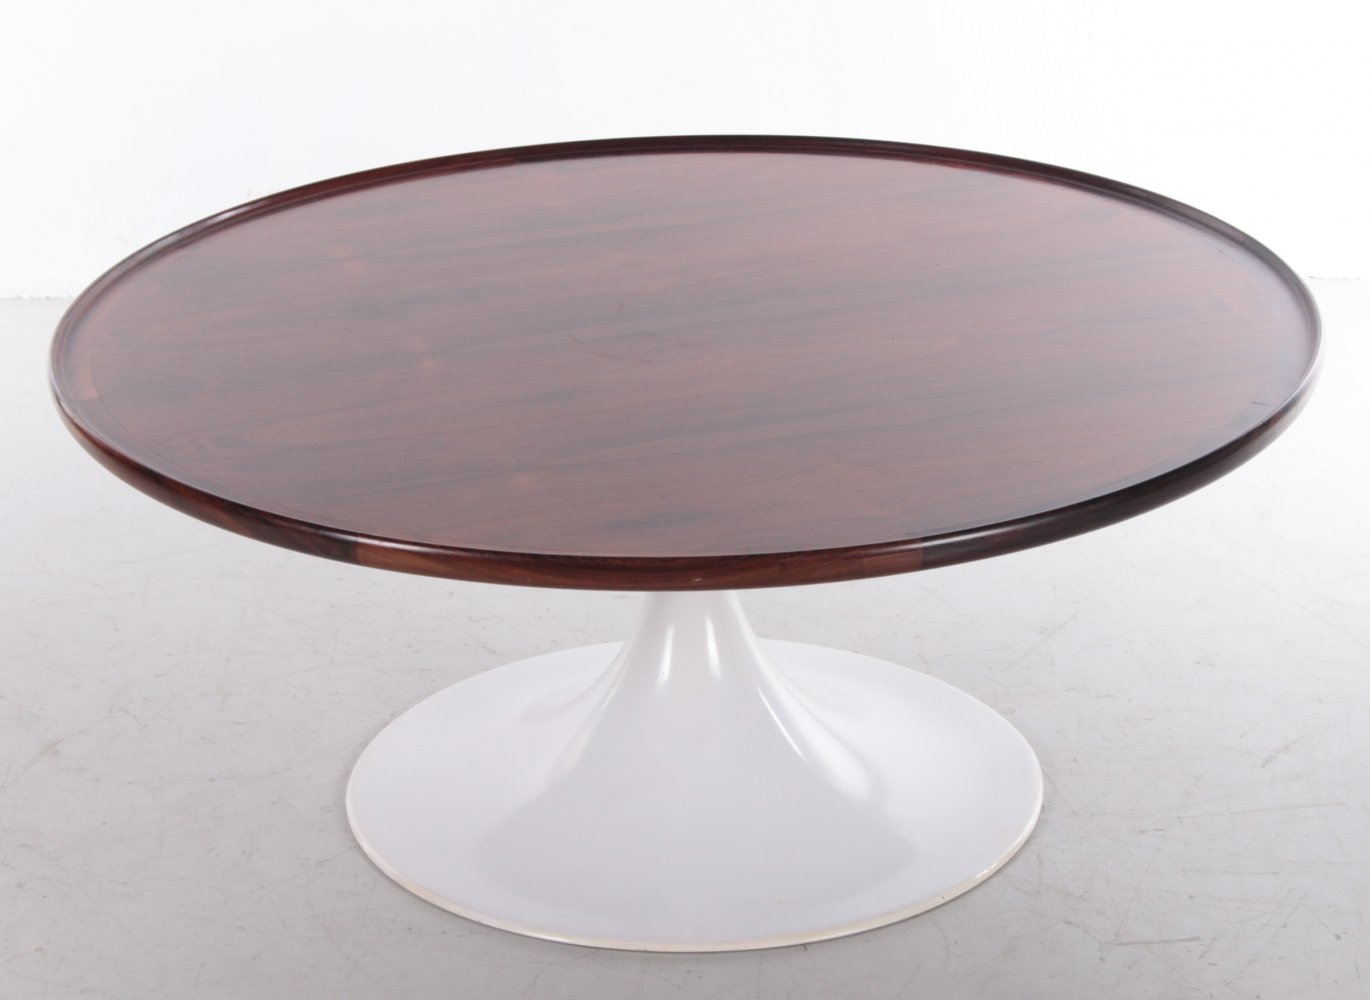 Vintage round coffee table with rosewood top, 1970